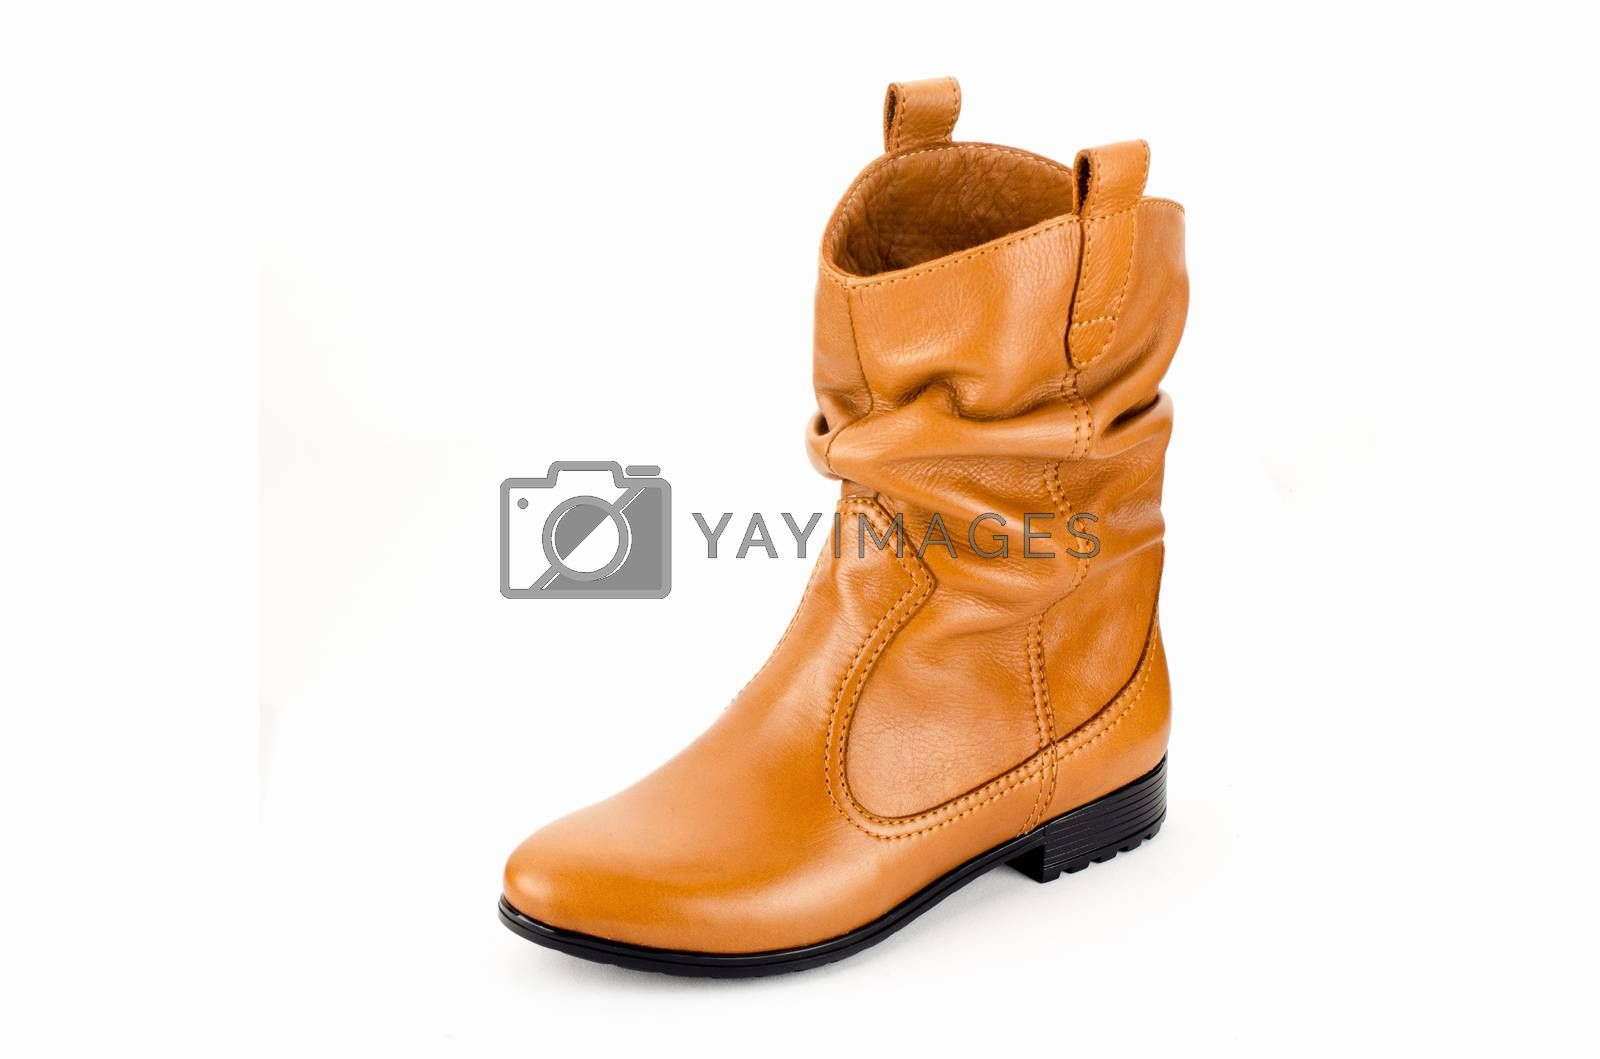 Royalty free image of Womens leather boots by Morfey713